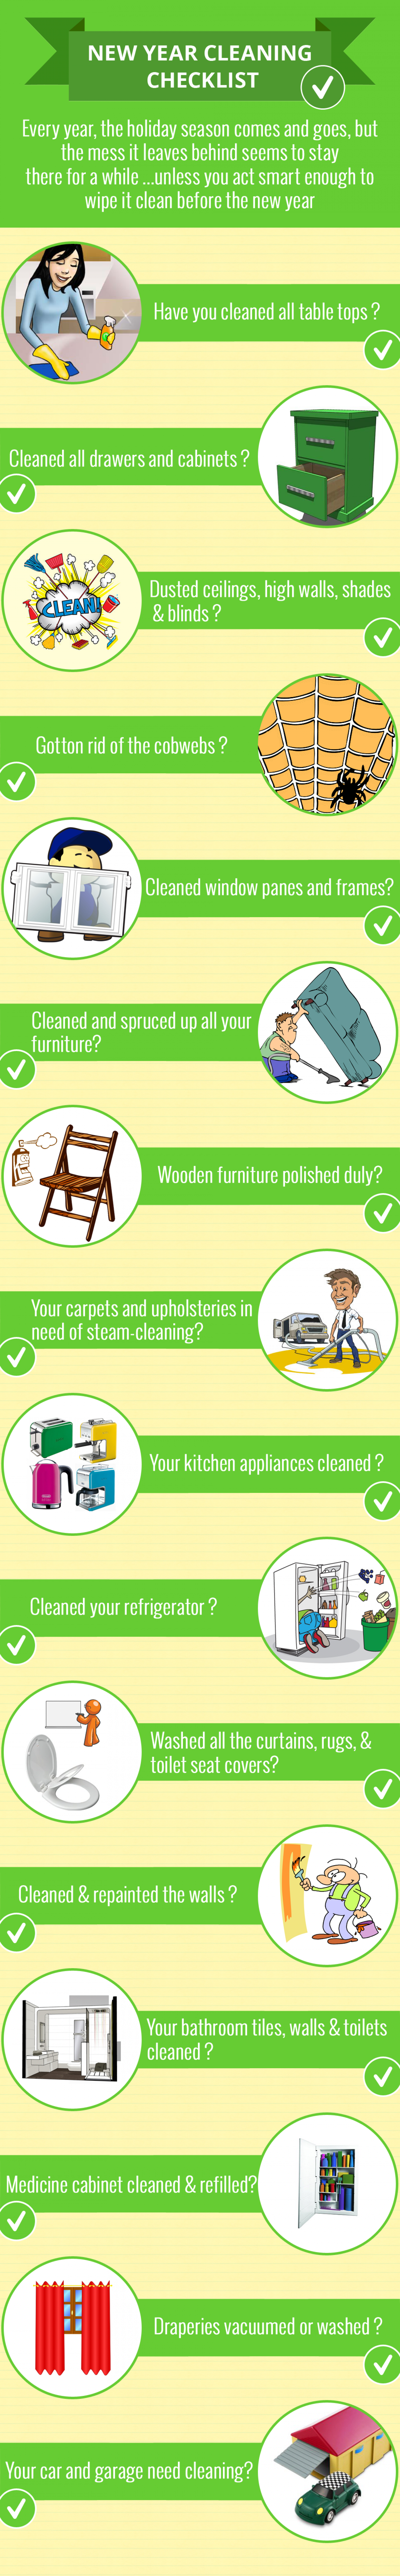 New Year Cleaning Checklist 2014 Infographic